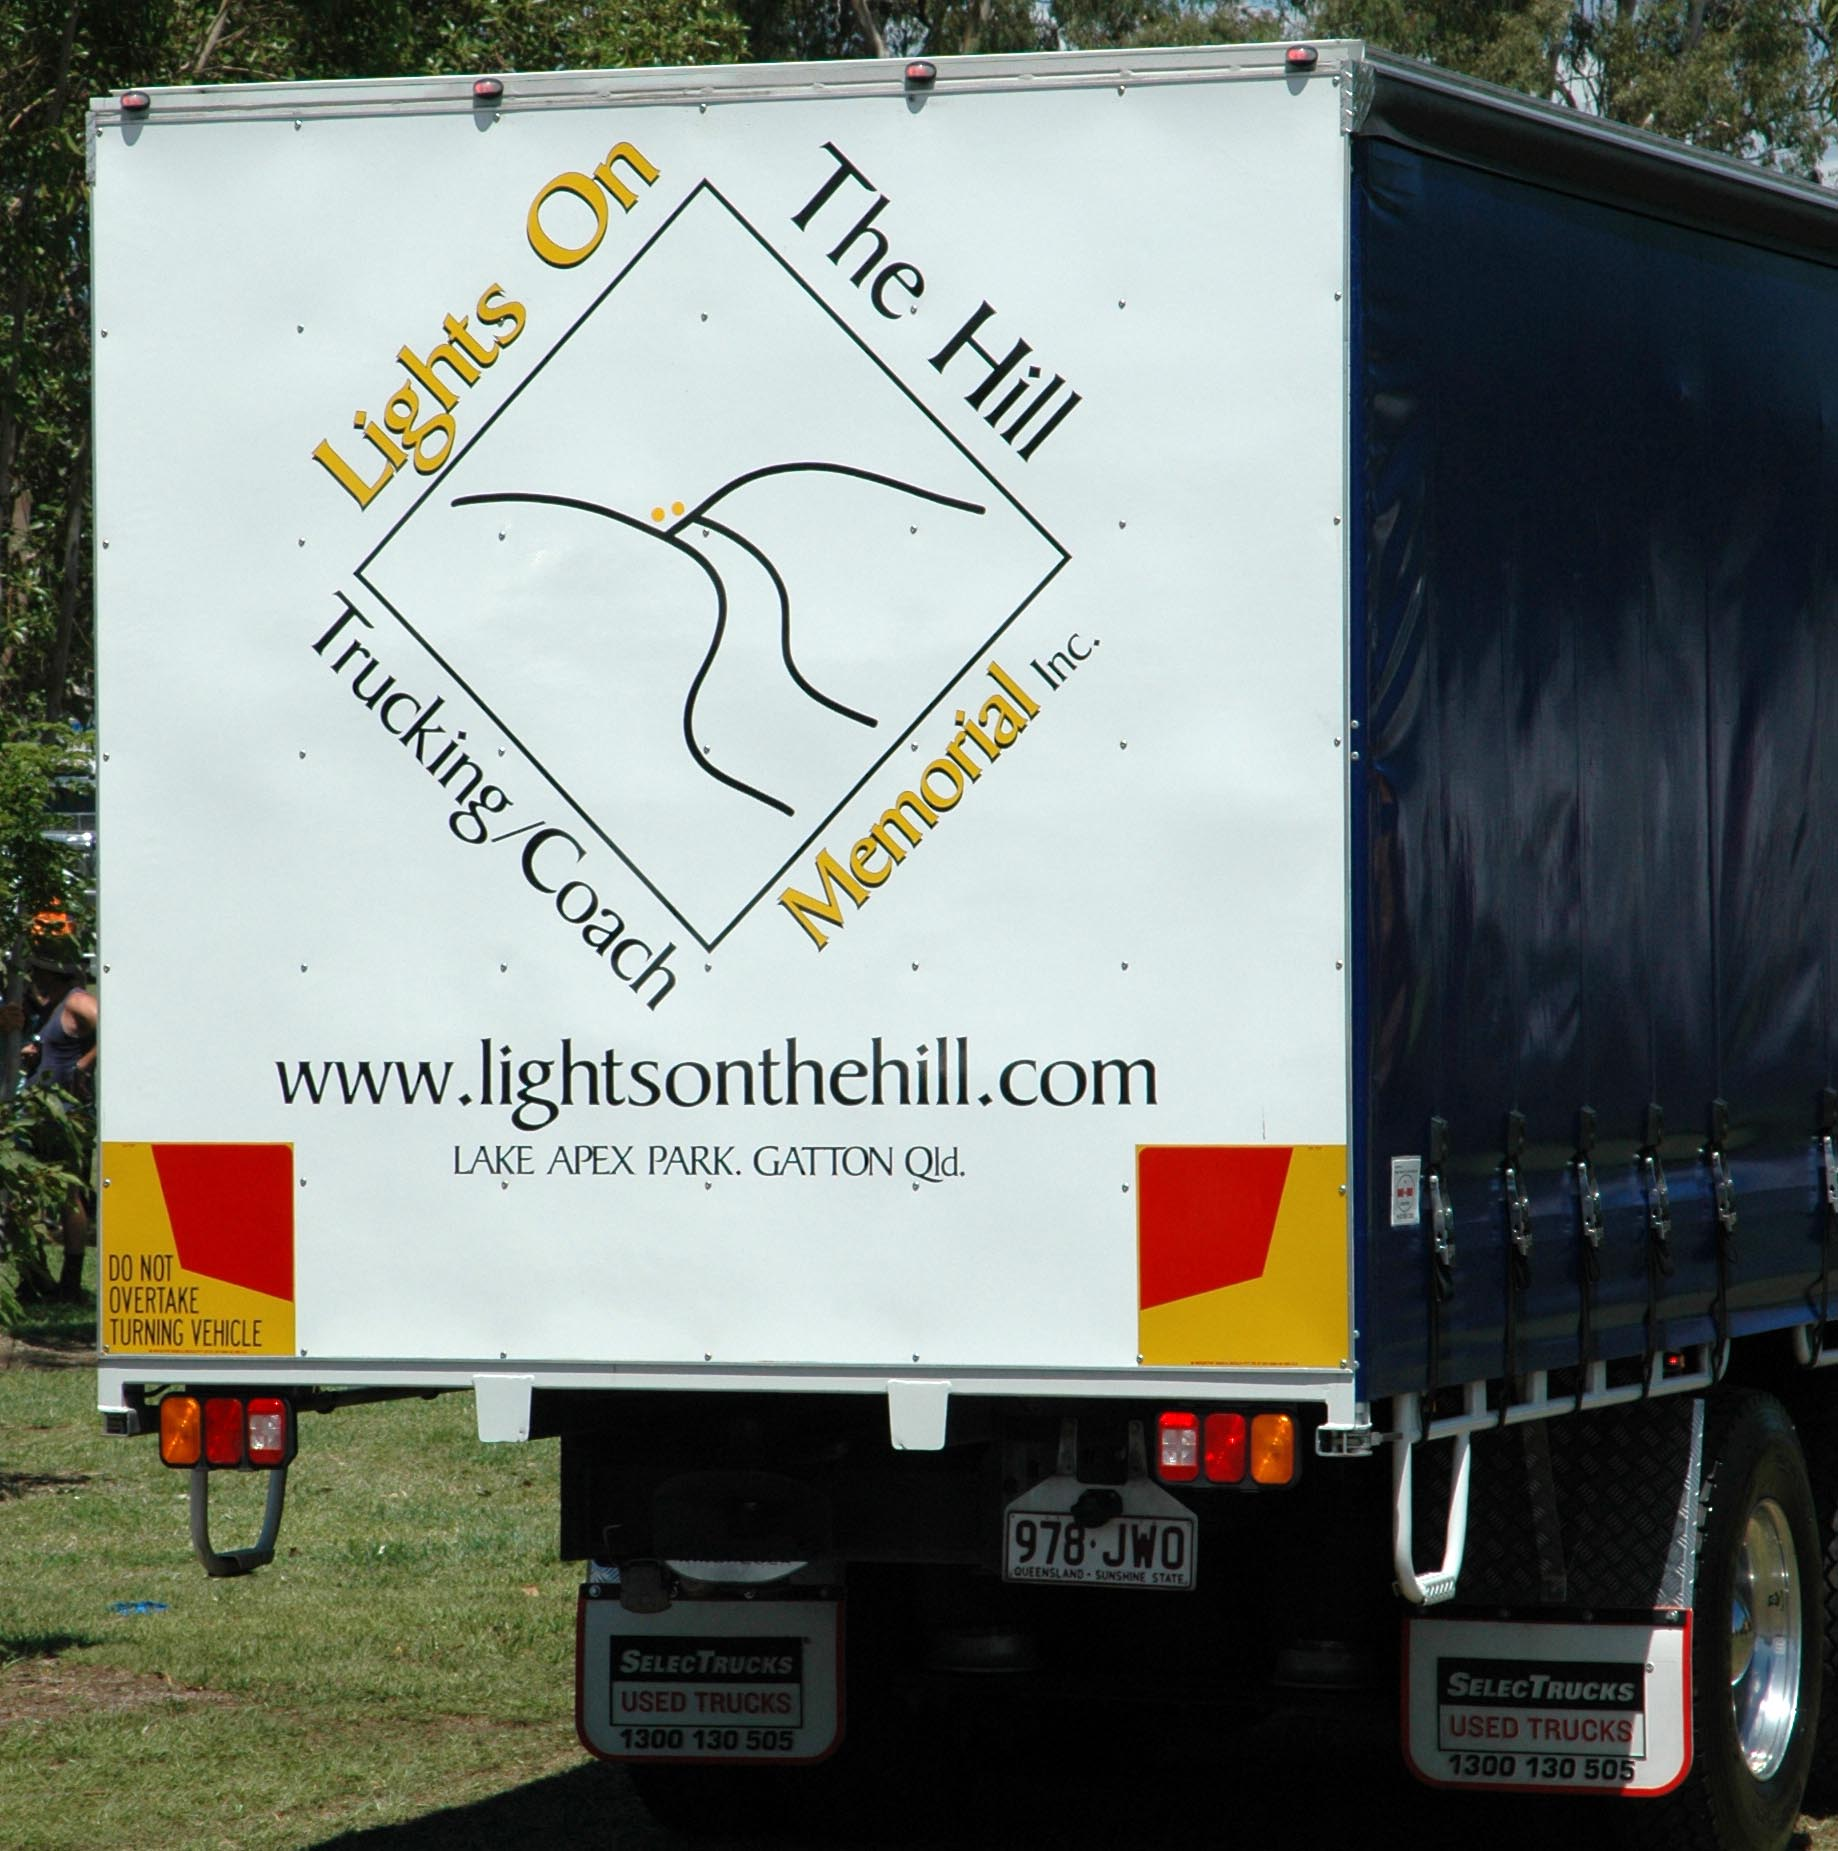 Httpsownerdriverindustry news1312truck and dogs 30752g fandeluxe Gallery